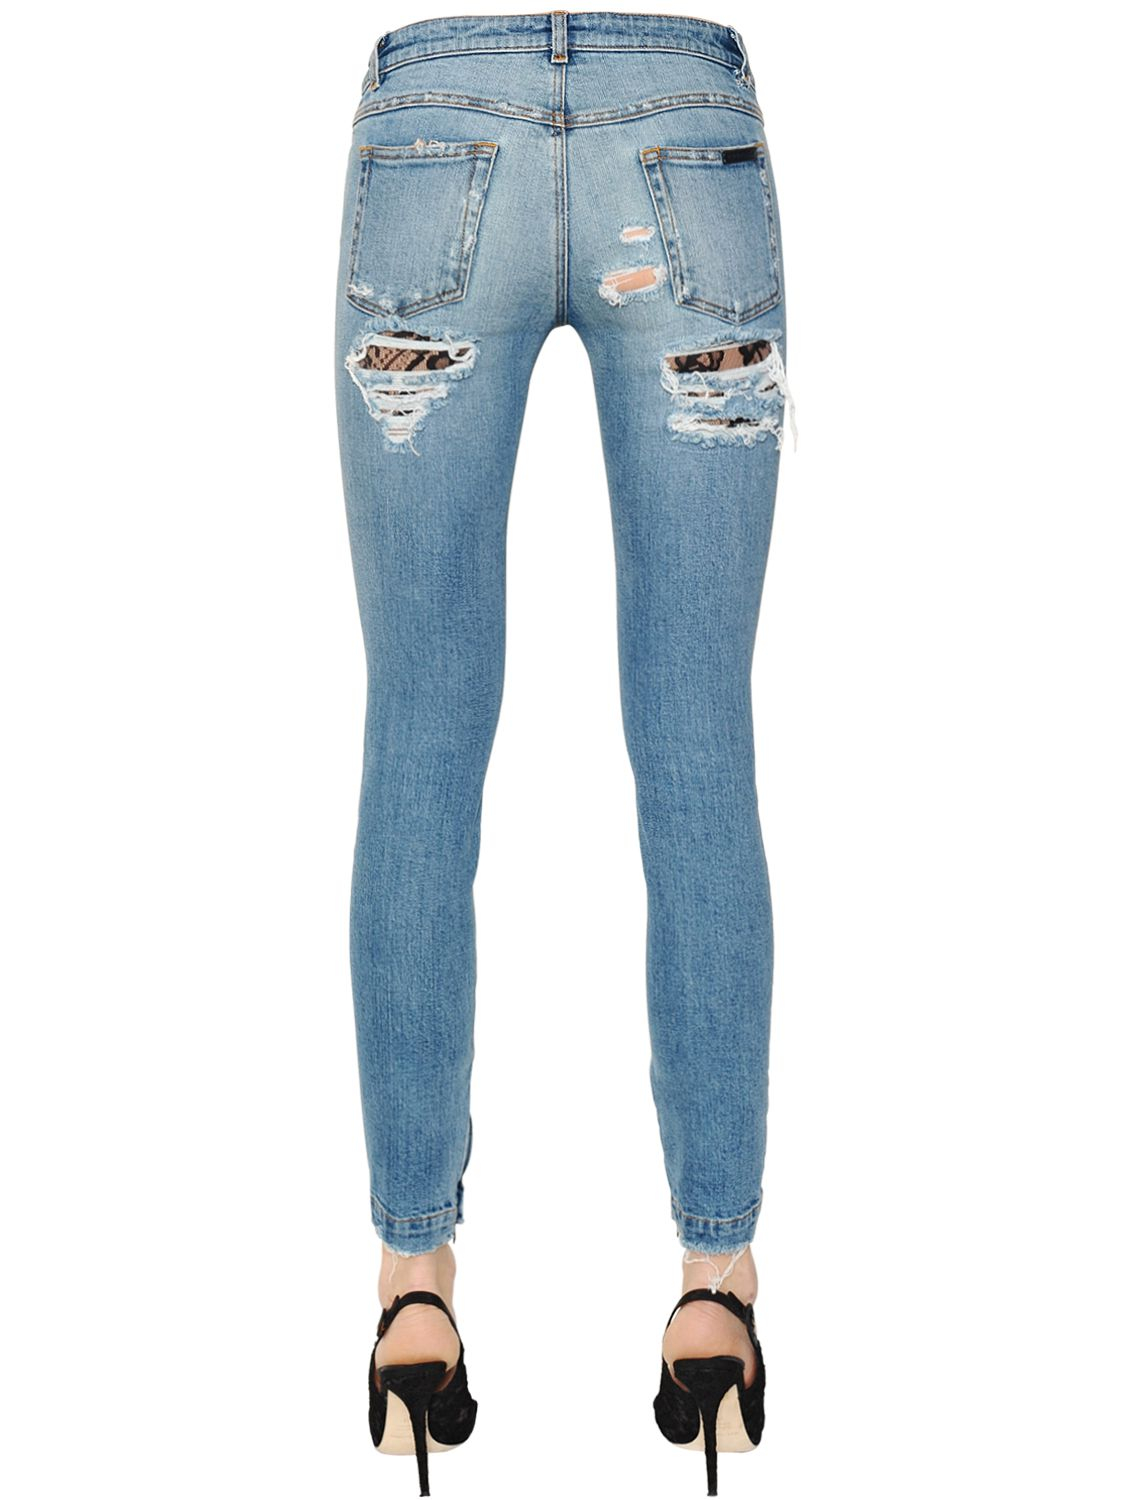 lyst dolce gabbana destroyed denim jeans with lace inserts in blue. Black Bedroom Furniture Sets. Home Design Ideas